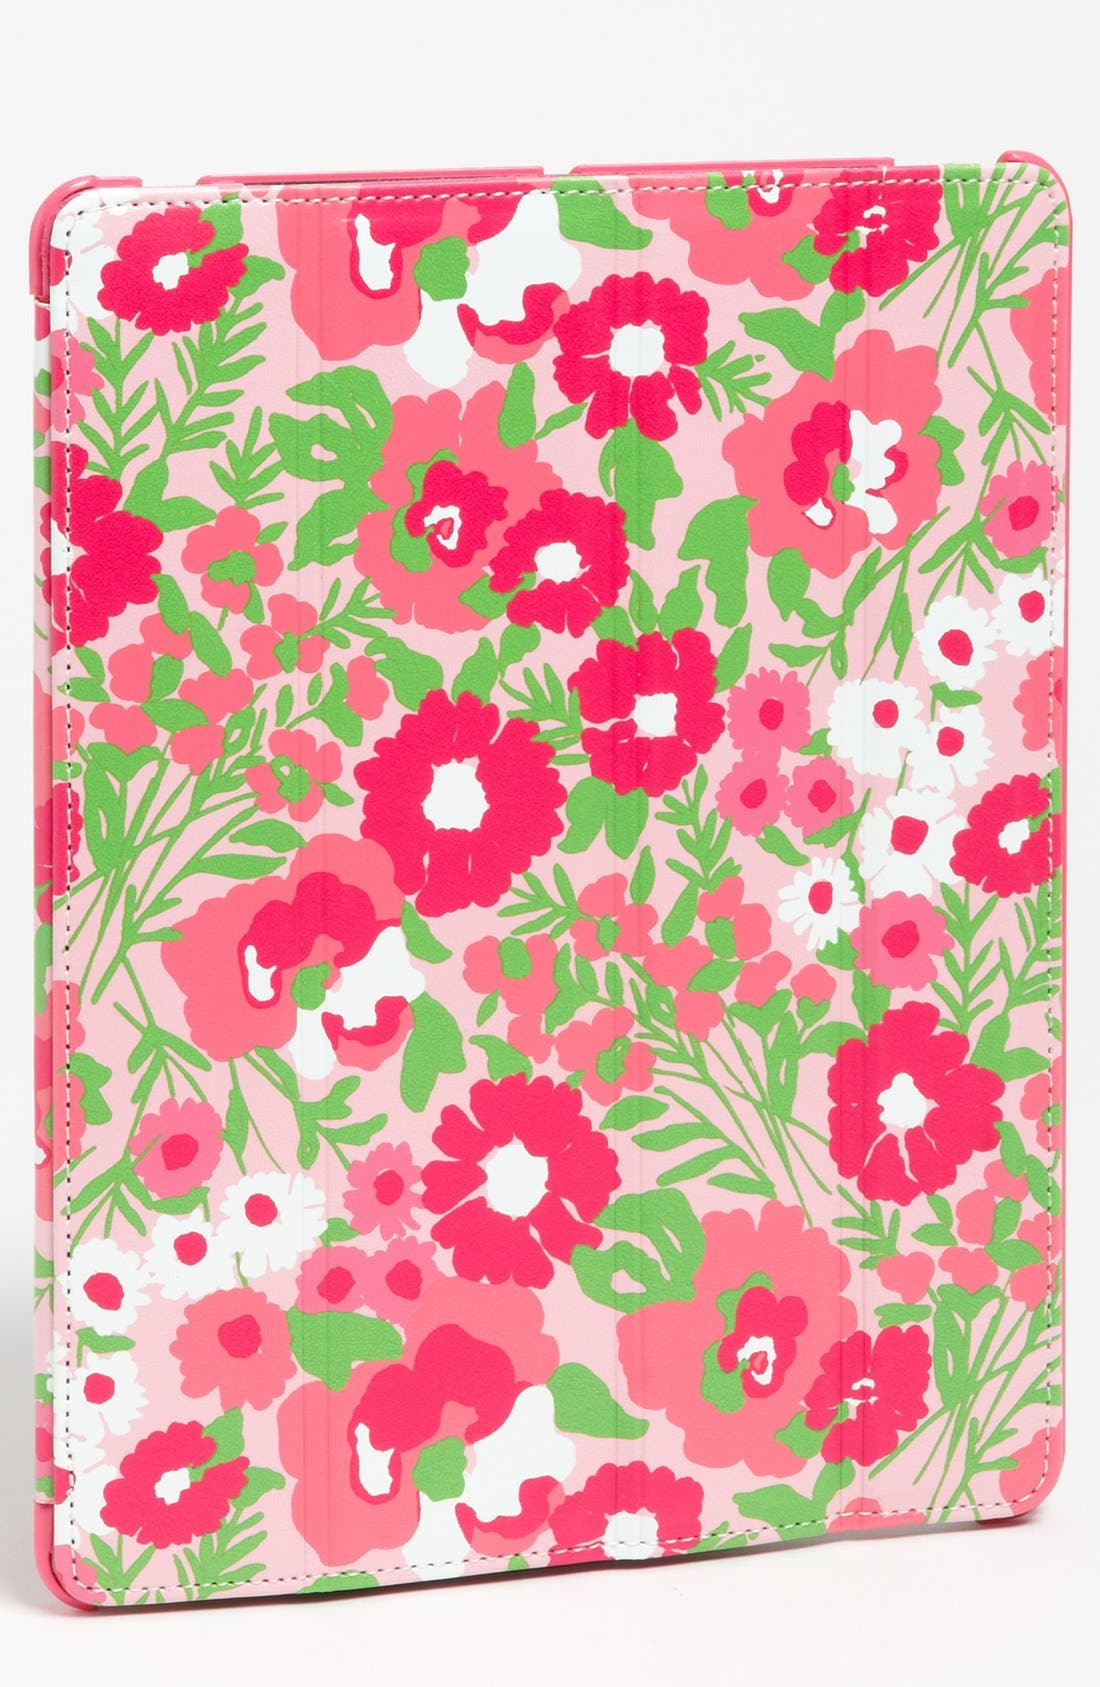 Alternate Image 1 Selected - Lilly Pulitzer® 'Garden by the Sea' iPad 2 & 3 Case